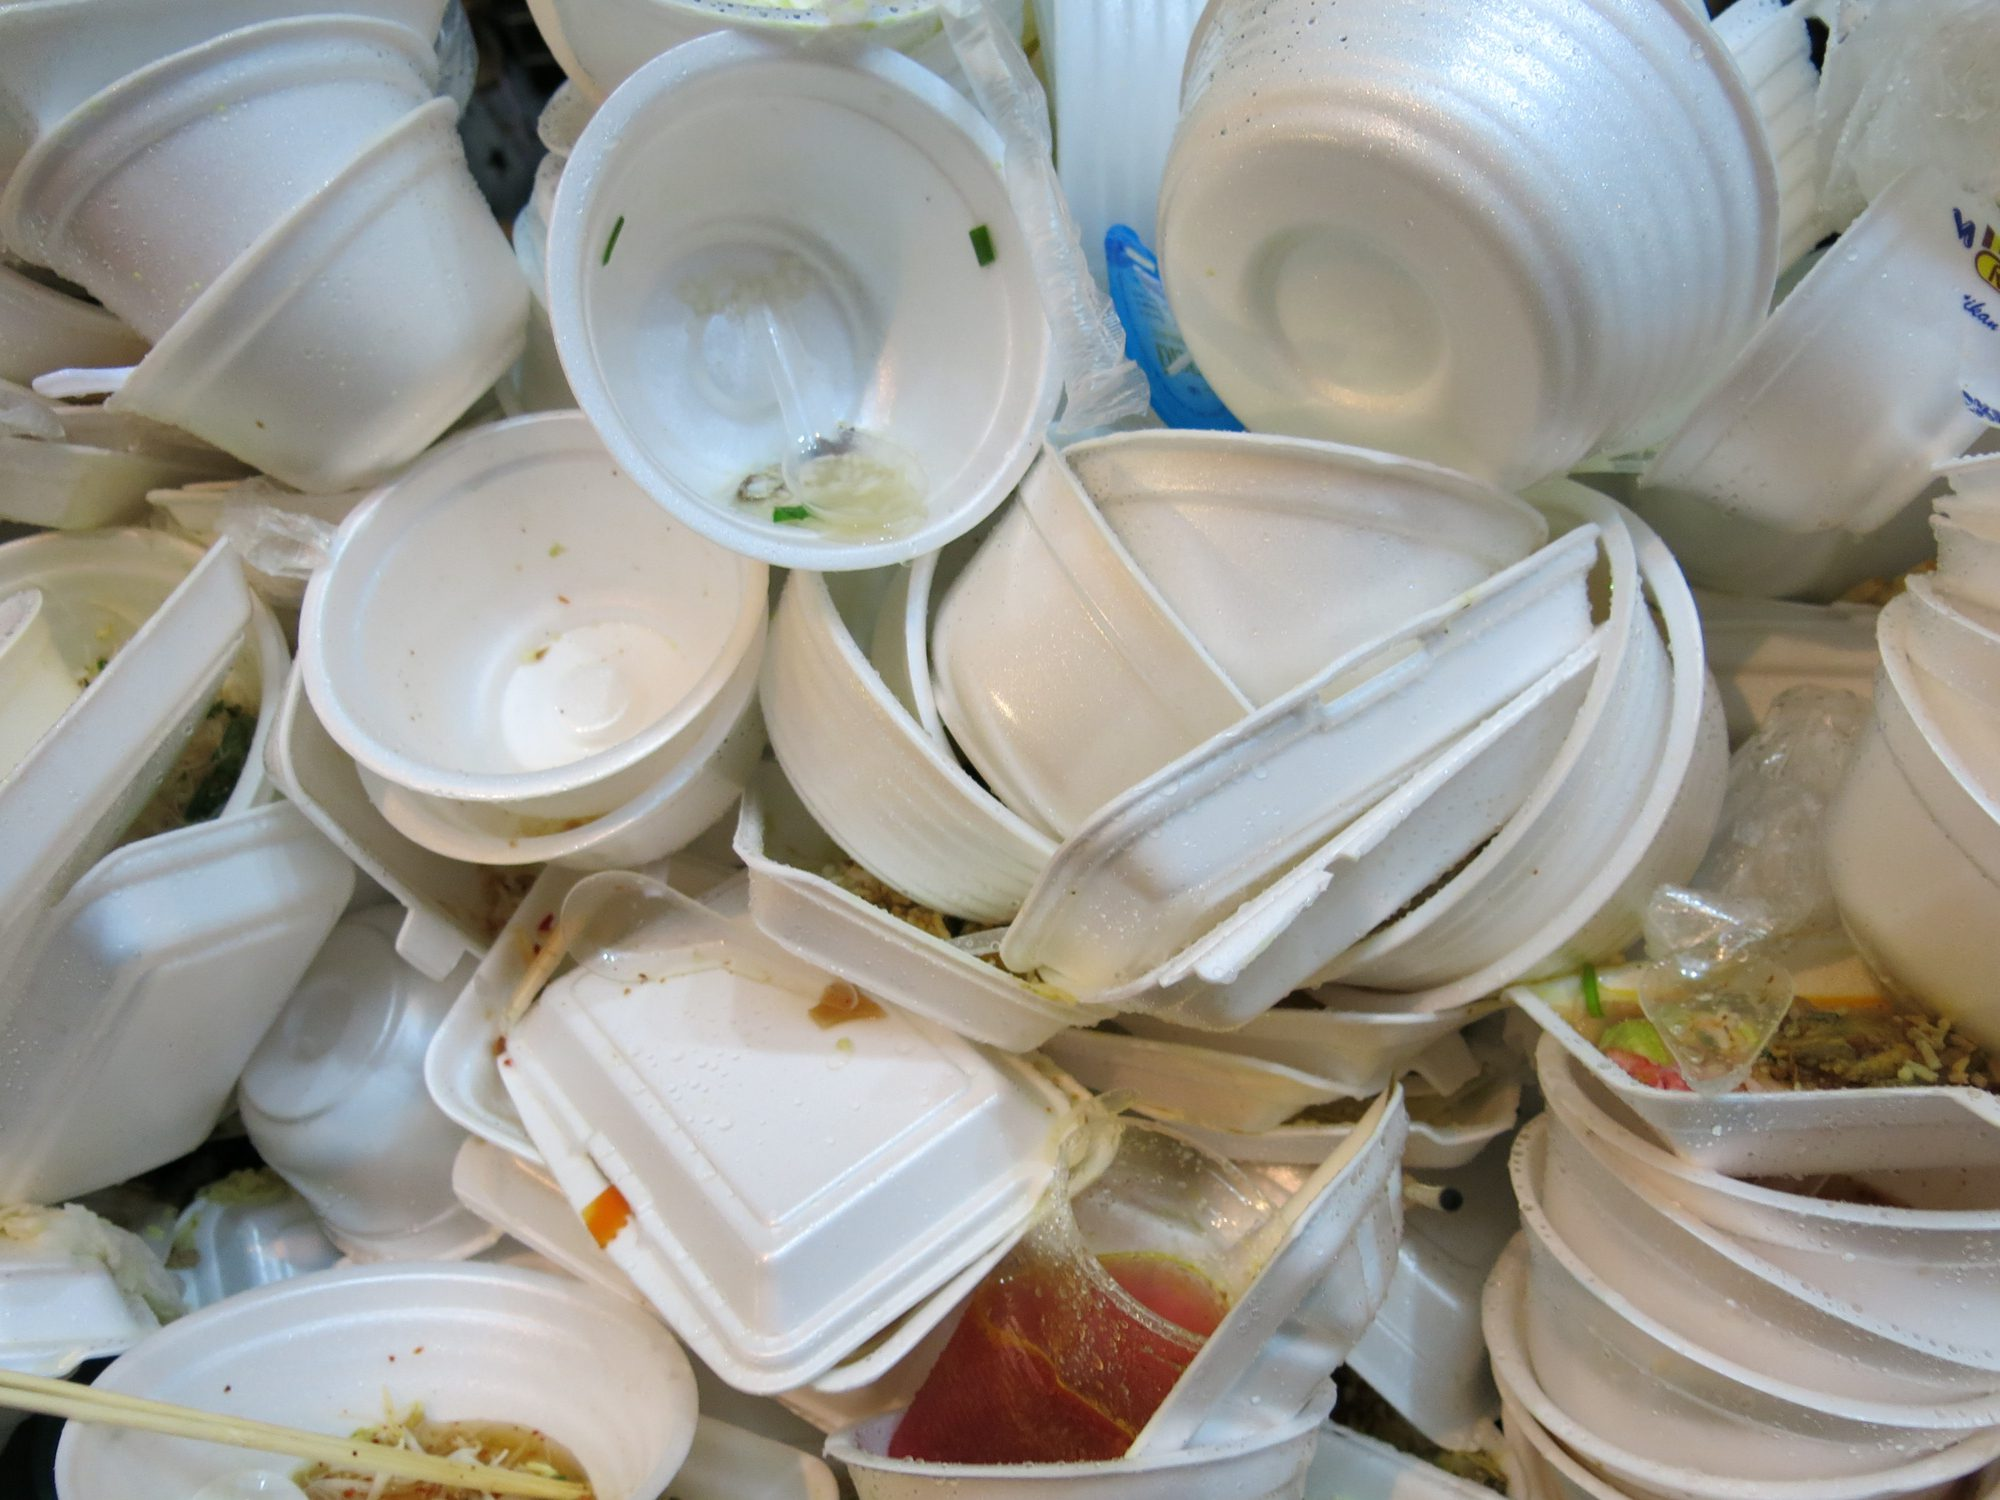 Bangkok, Thailand – November 9, 2013: Litter of Foam food containers in the garbage bins near the area of anti-government rally in Bangkok, Thailand.